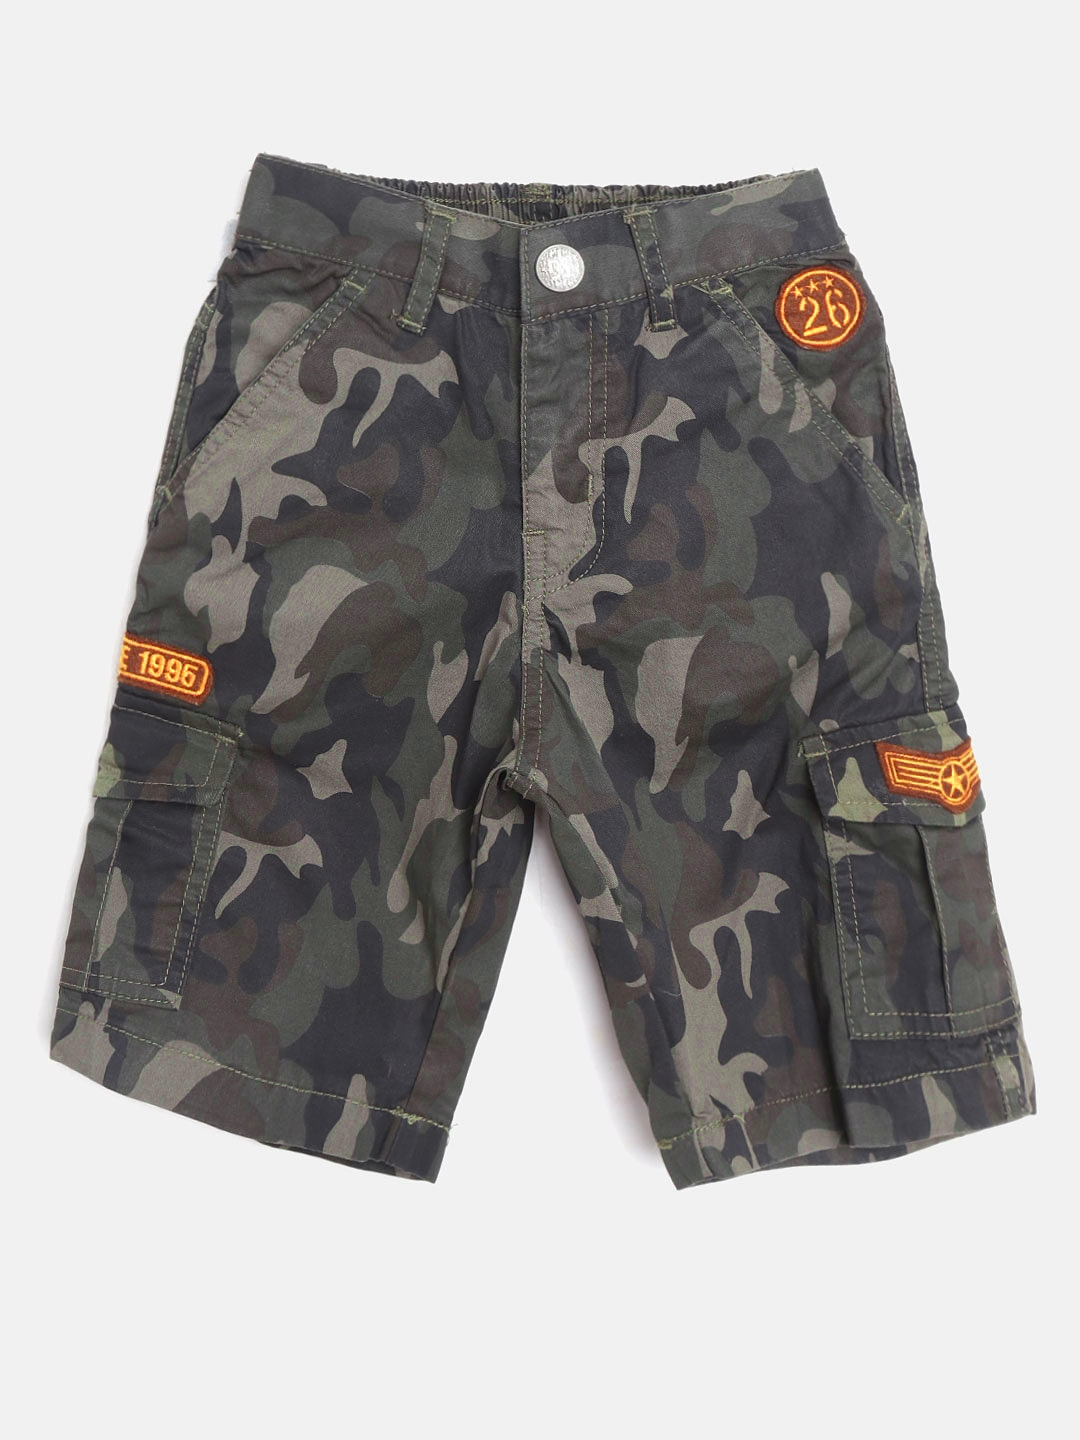 92c8a57390 Camouflage Shorts - Buy Camouflage Shorts online in India